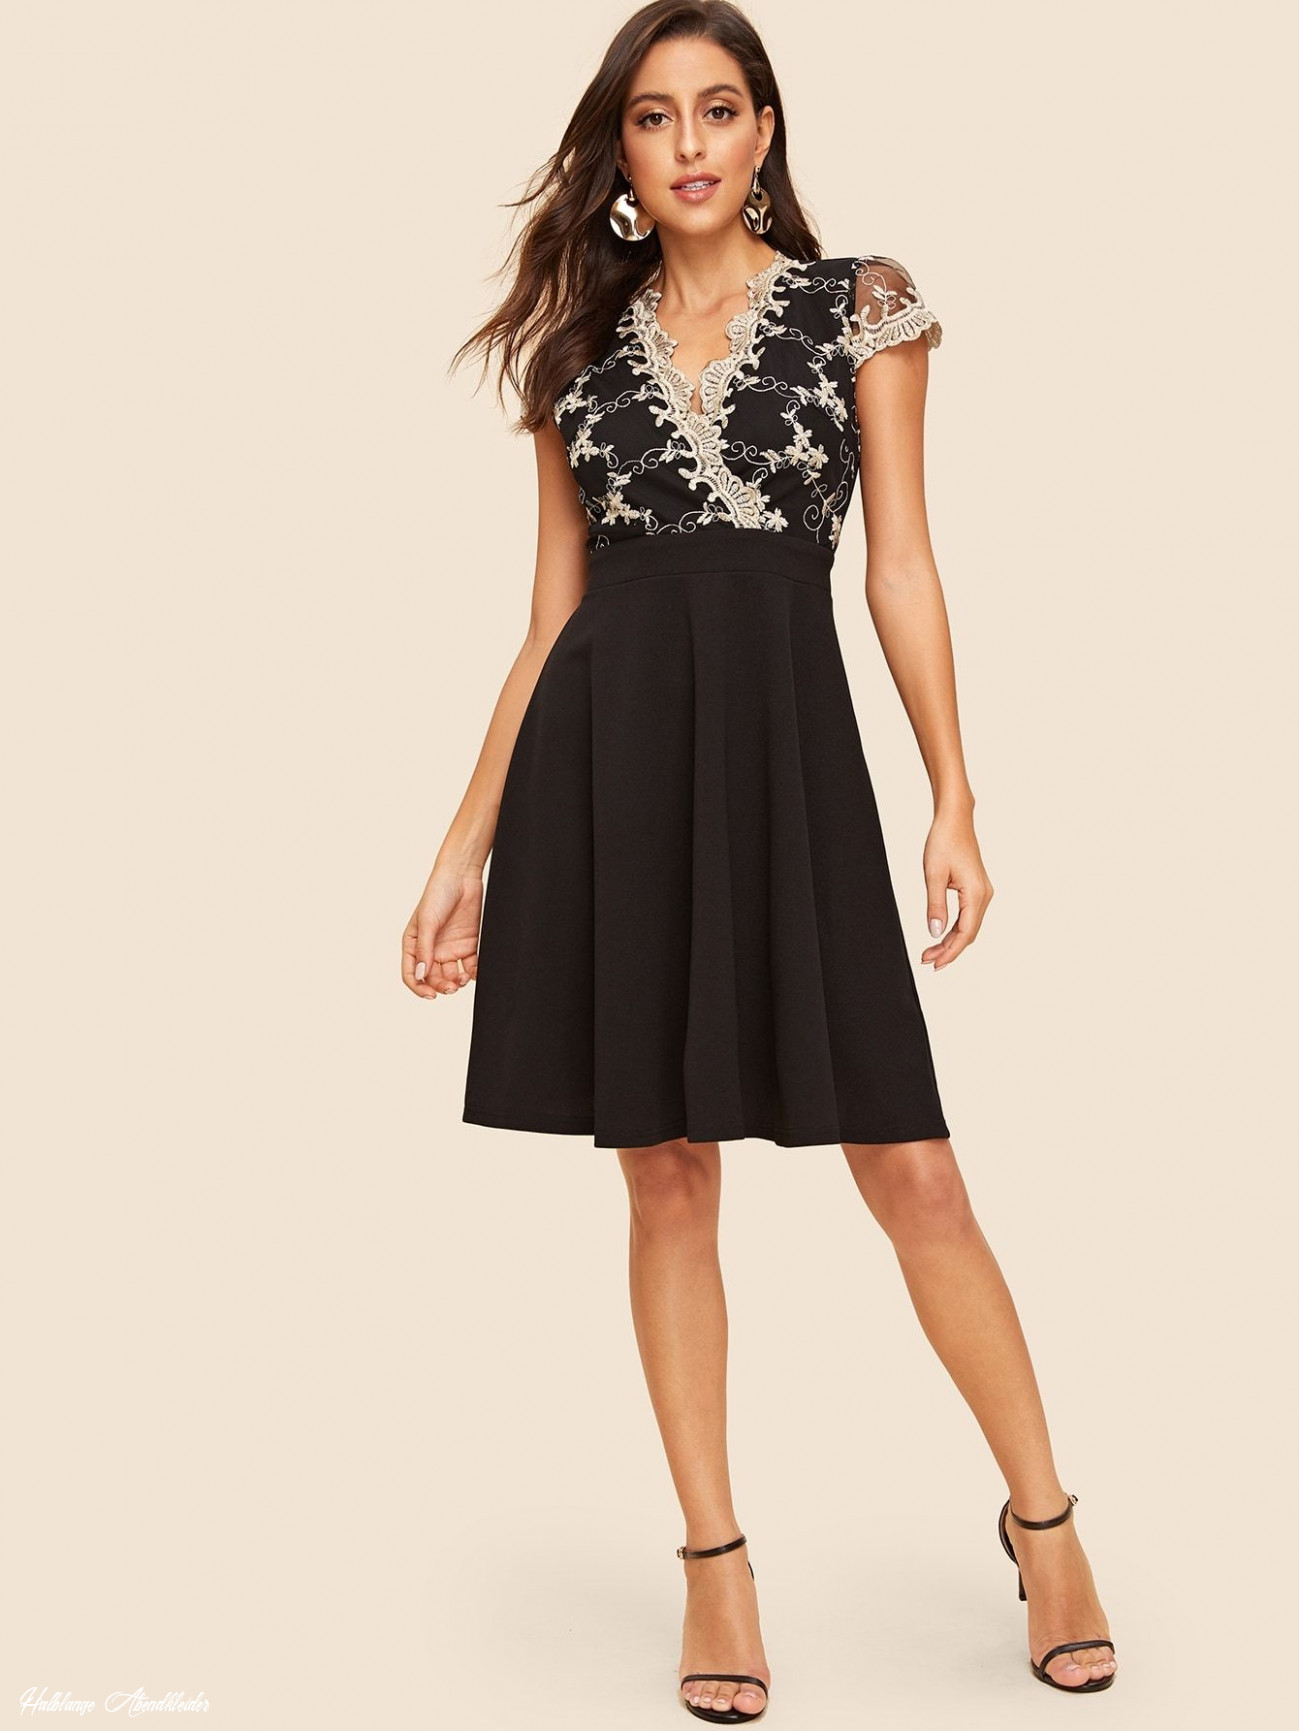 9s embroidered mesh overlay pleated dress #sponsored , #affiliate